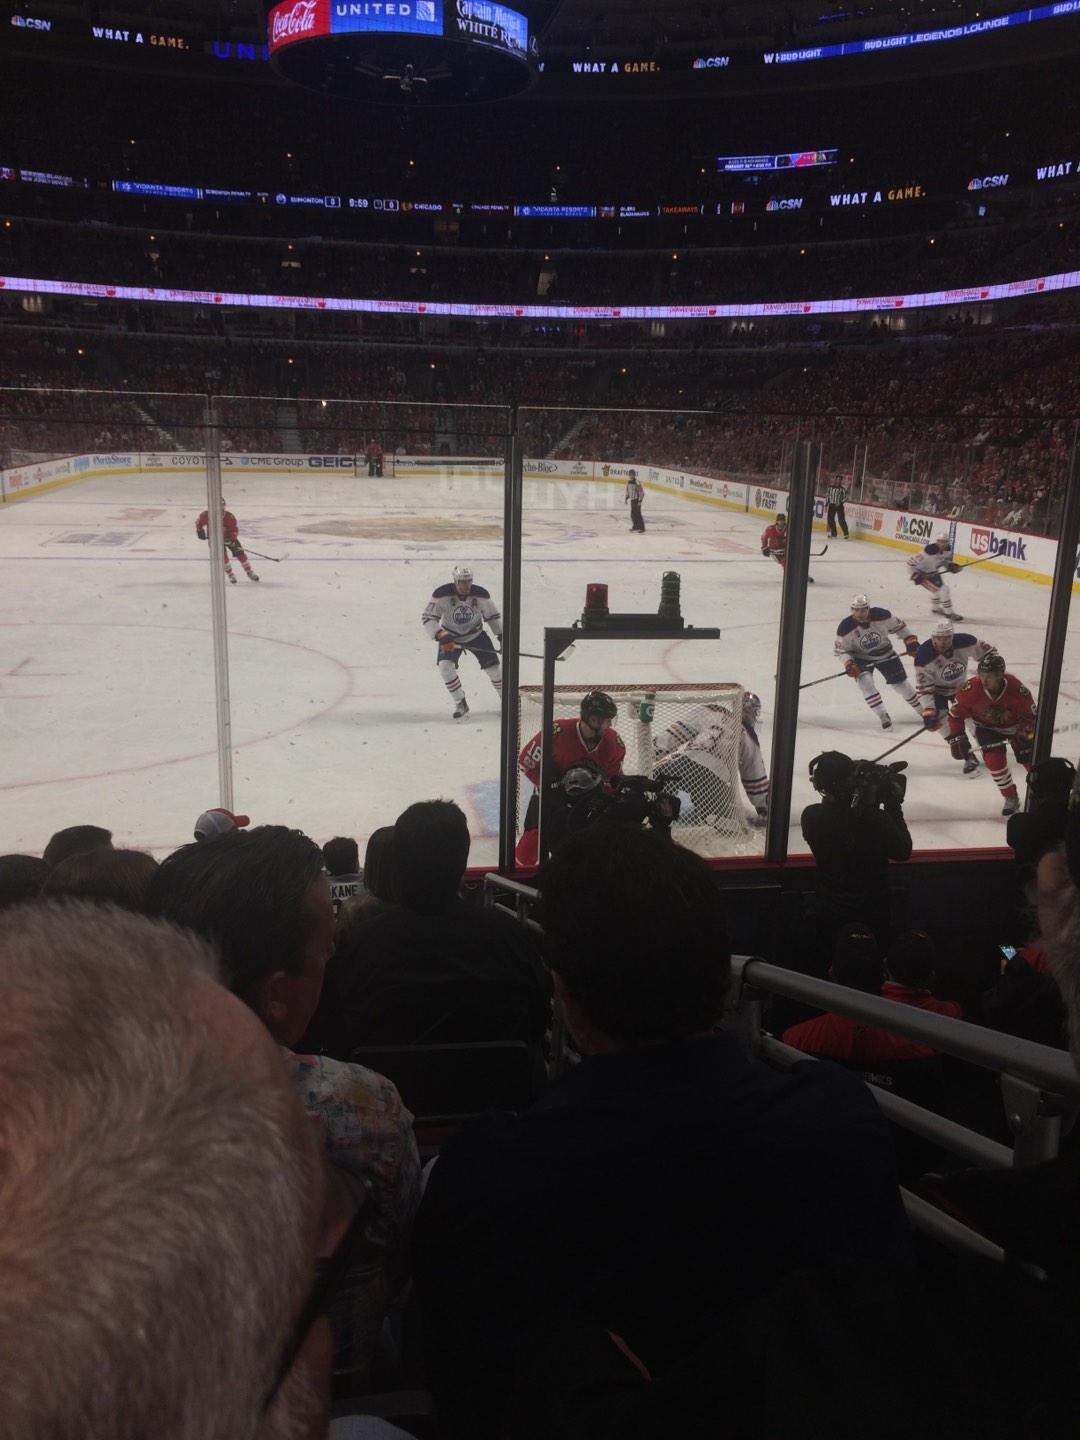 United Center Section 117 Row 8 Seat 4